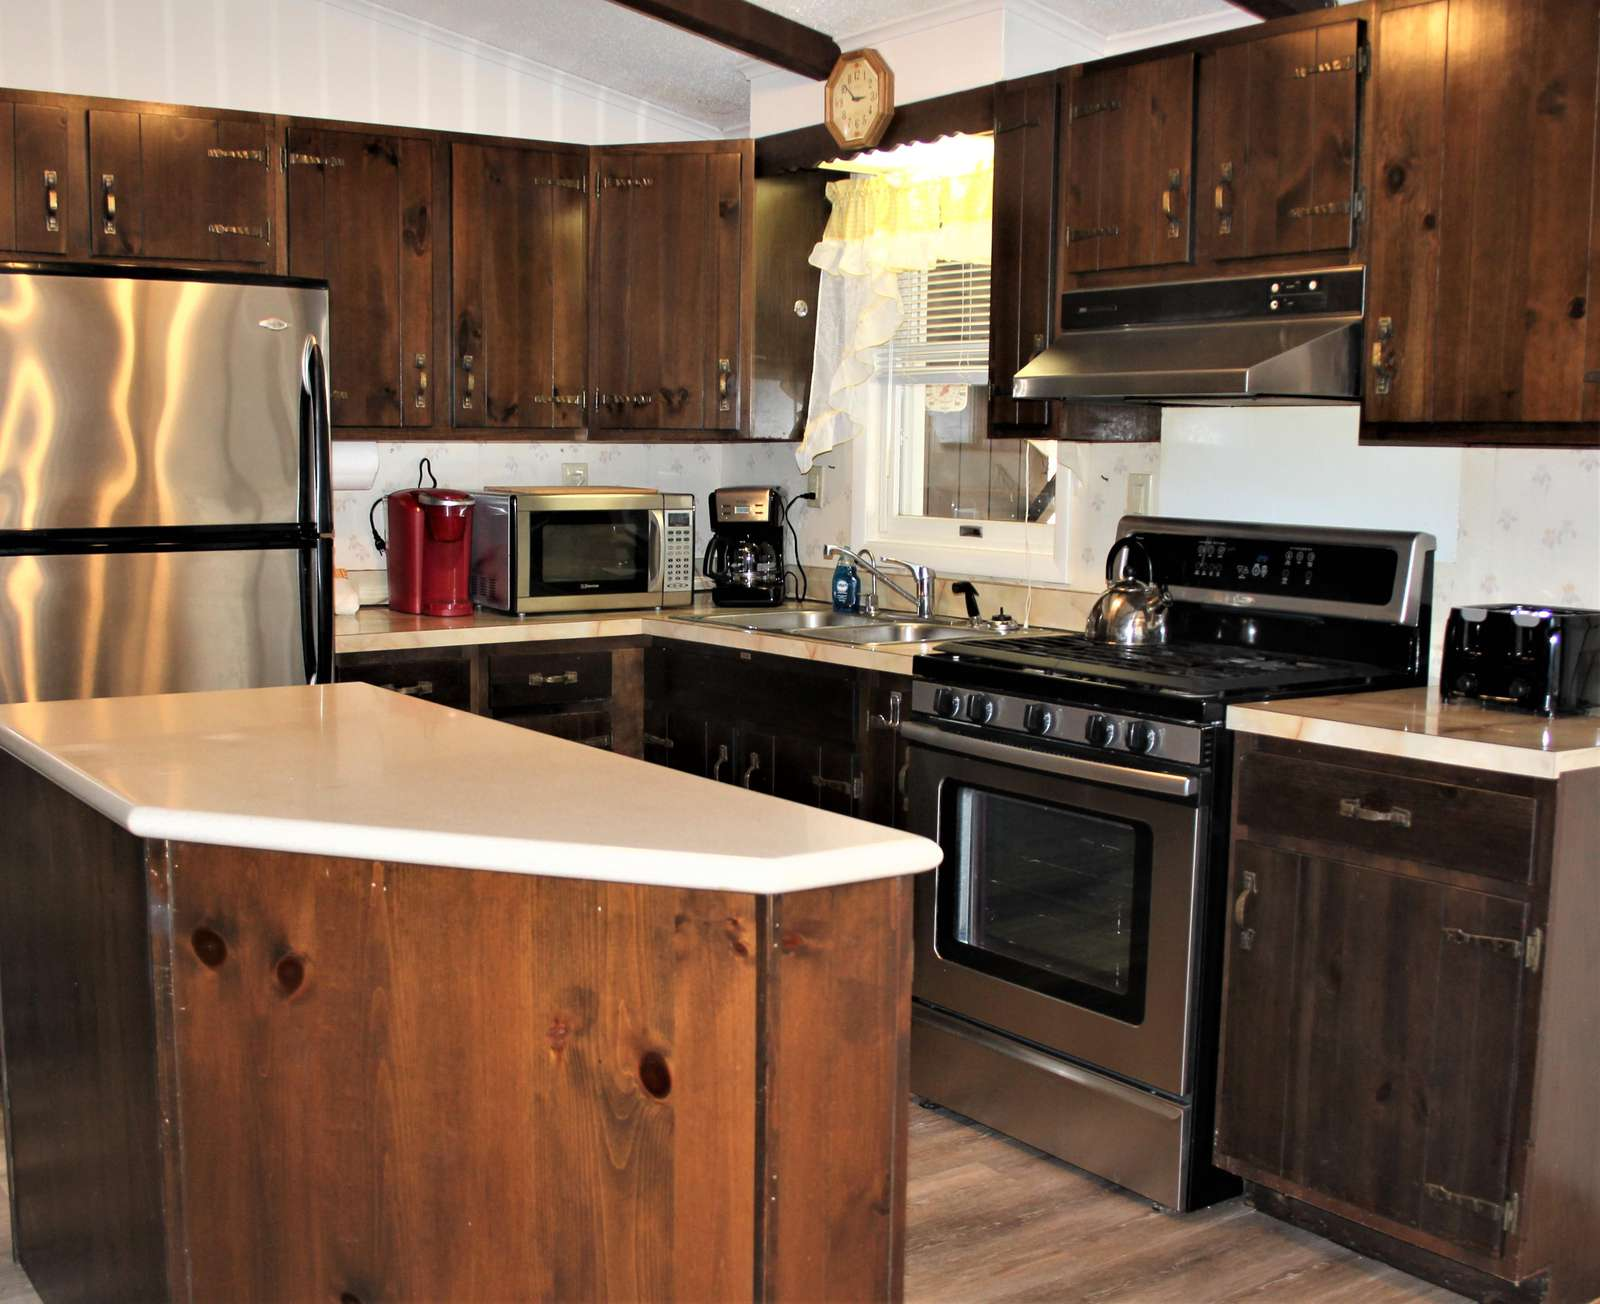 Another View of Kitchen Island, Stove, Refrigerator and Counters